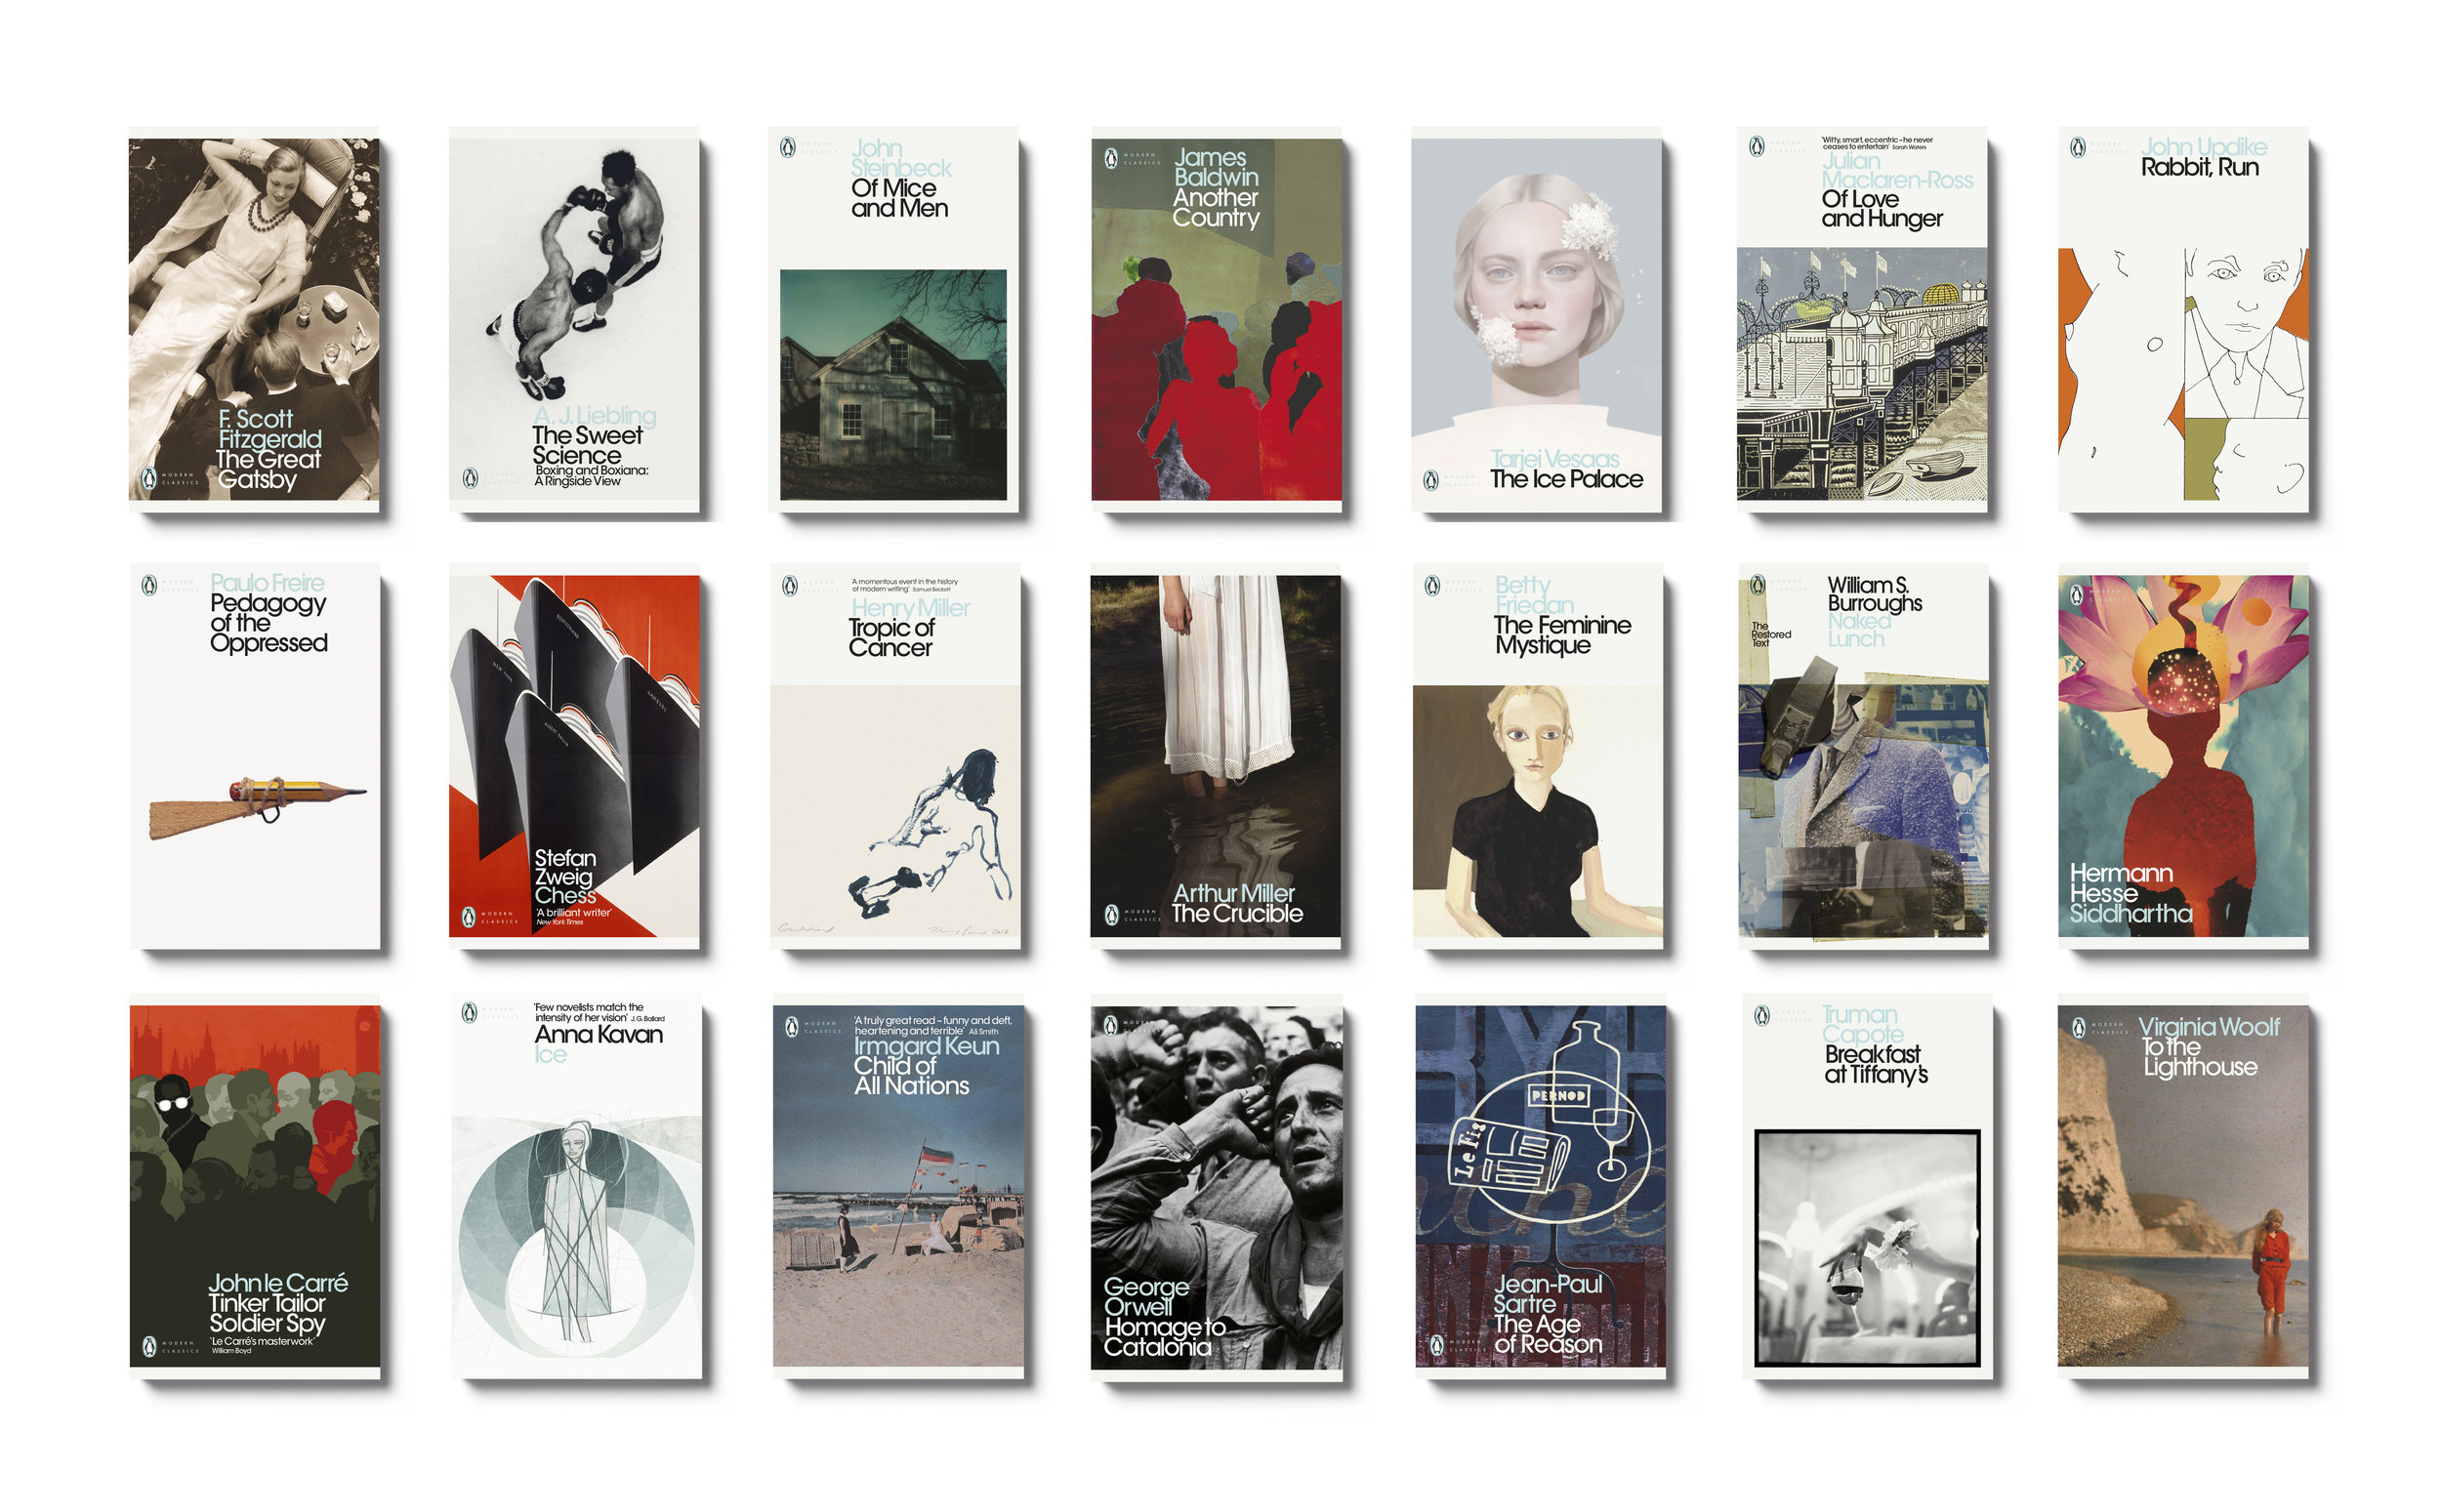 Penguin Modern Classics - Art Direction and Design: Jim Stoddart Picture Research: Samantha Johnson Isabelle De Cat Fran Roper Artworking: Arran Elvidge